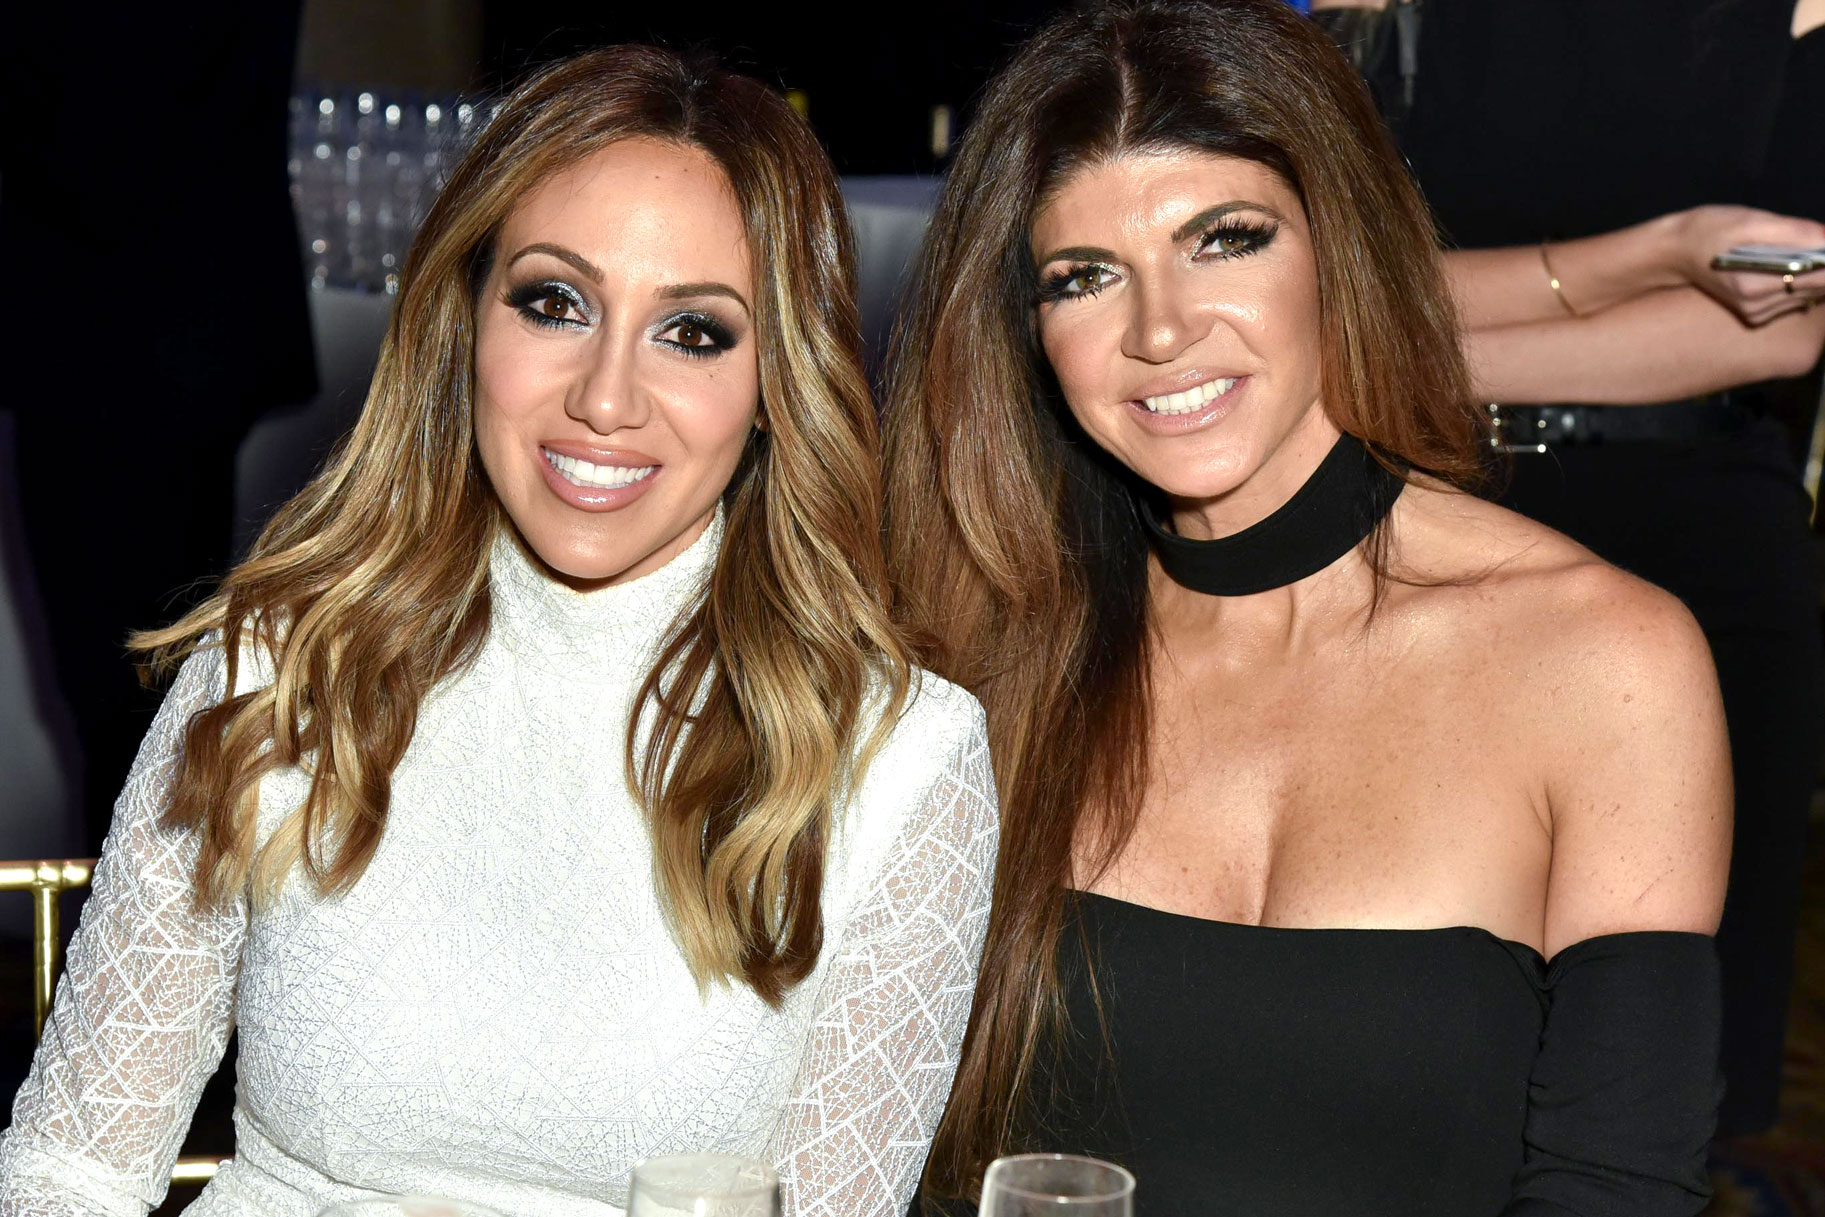 teresa-giudice-reportedly-throws-a-glass-of-wine-at-rhonj-co-star-while-at-melissa-gorgas-fashion-show